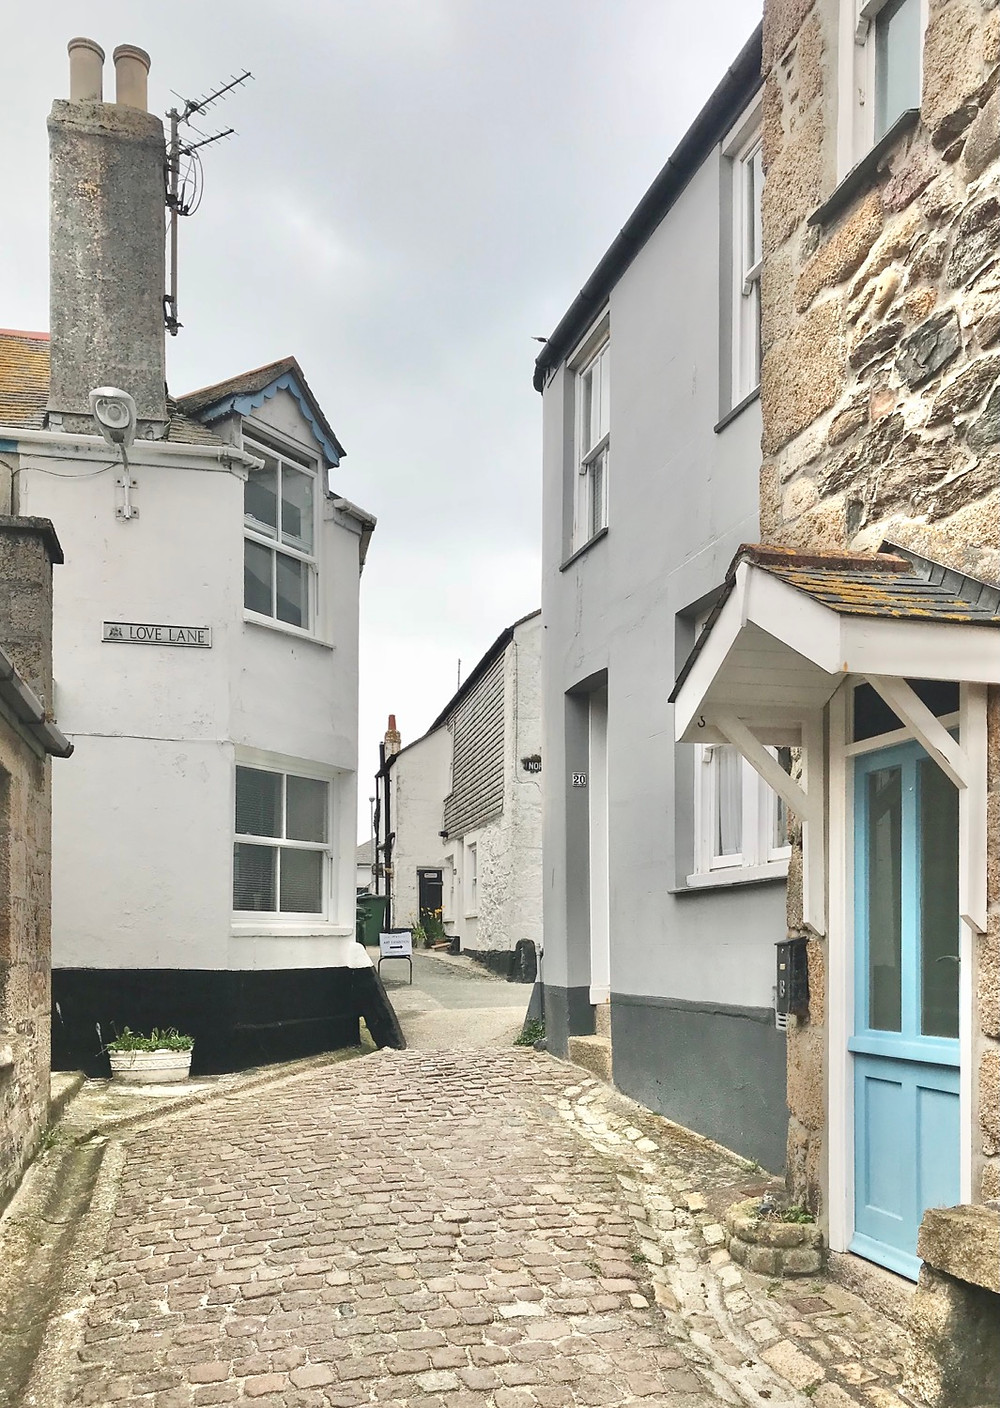 Traditional Houses of St Ives Cornwall surrounded by  cobbled streets